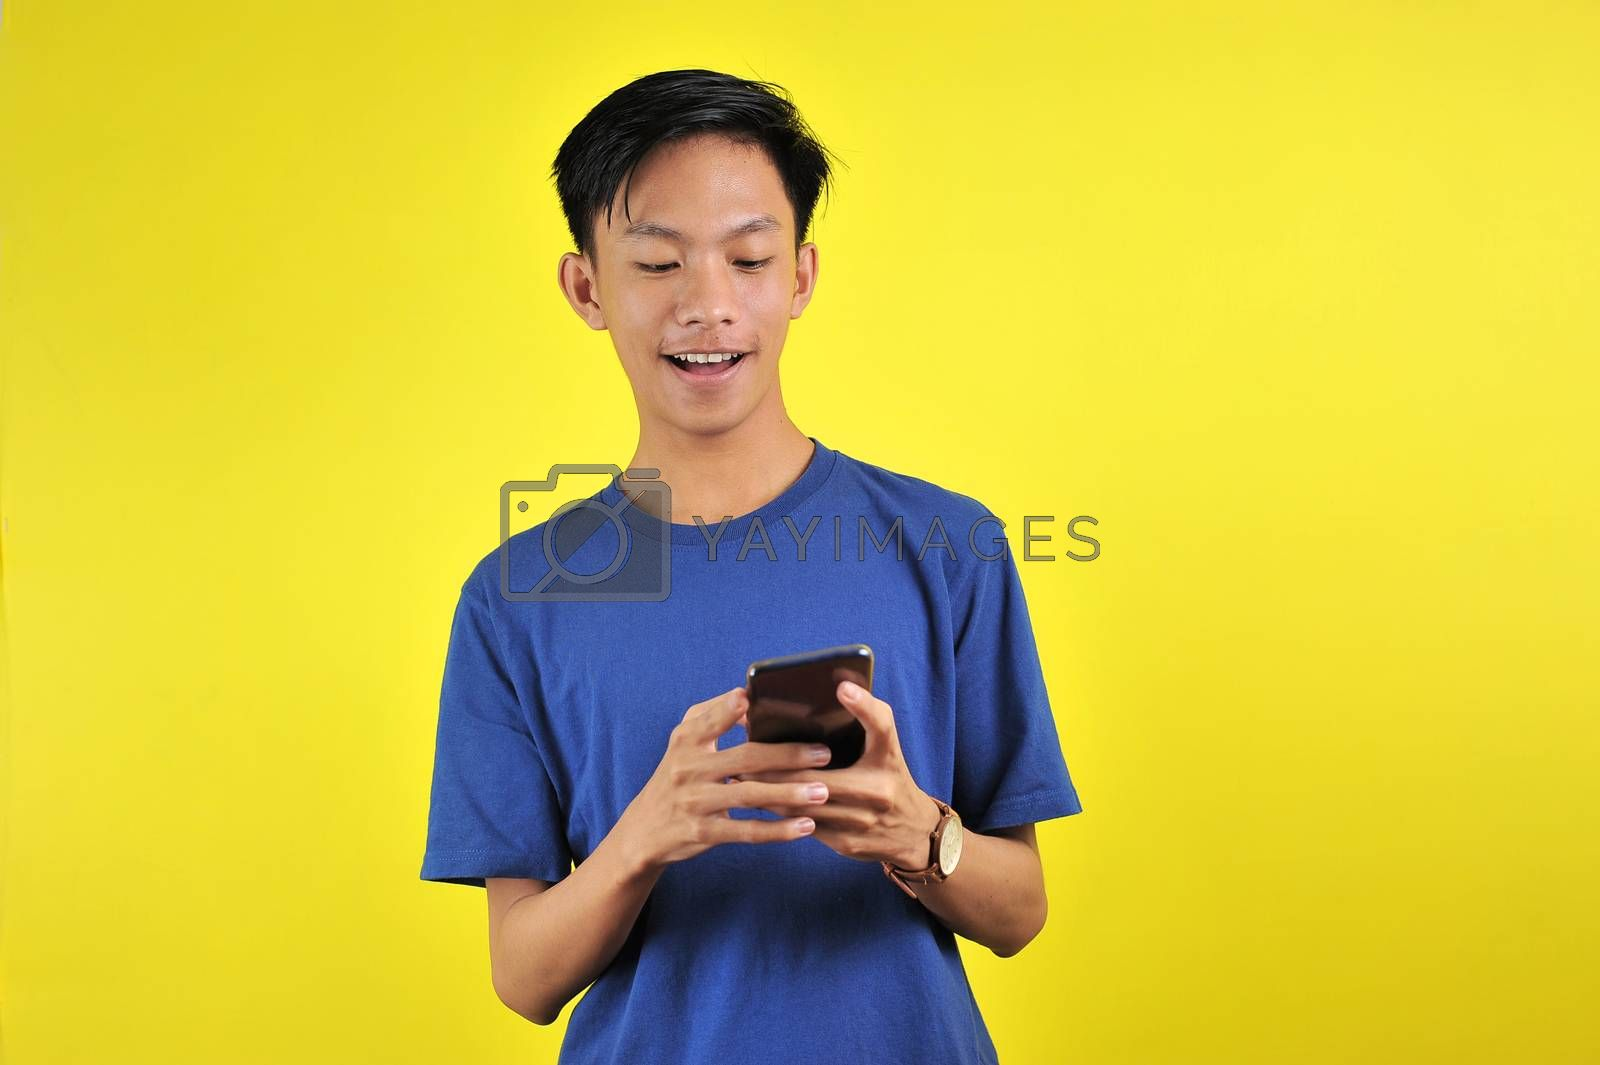 Happy of young good looking Asian man smiling using smartphone isolated on yellow background